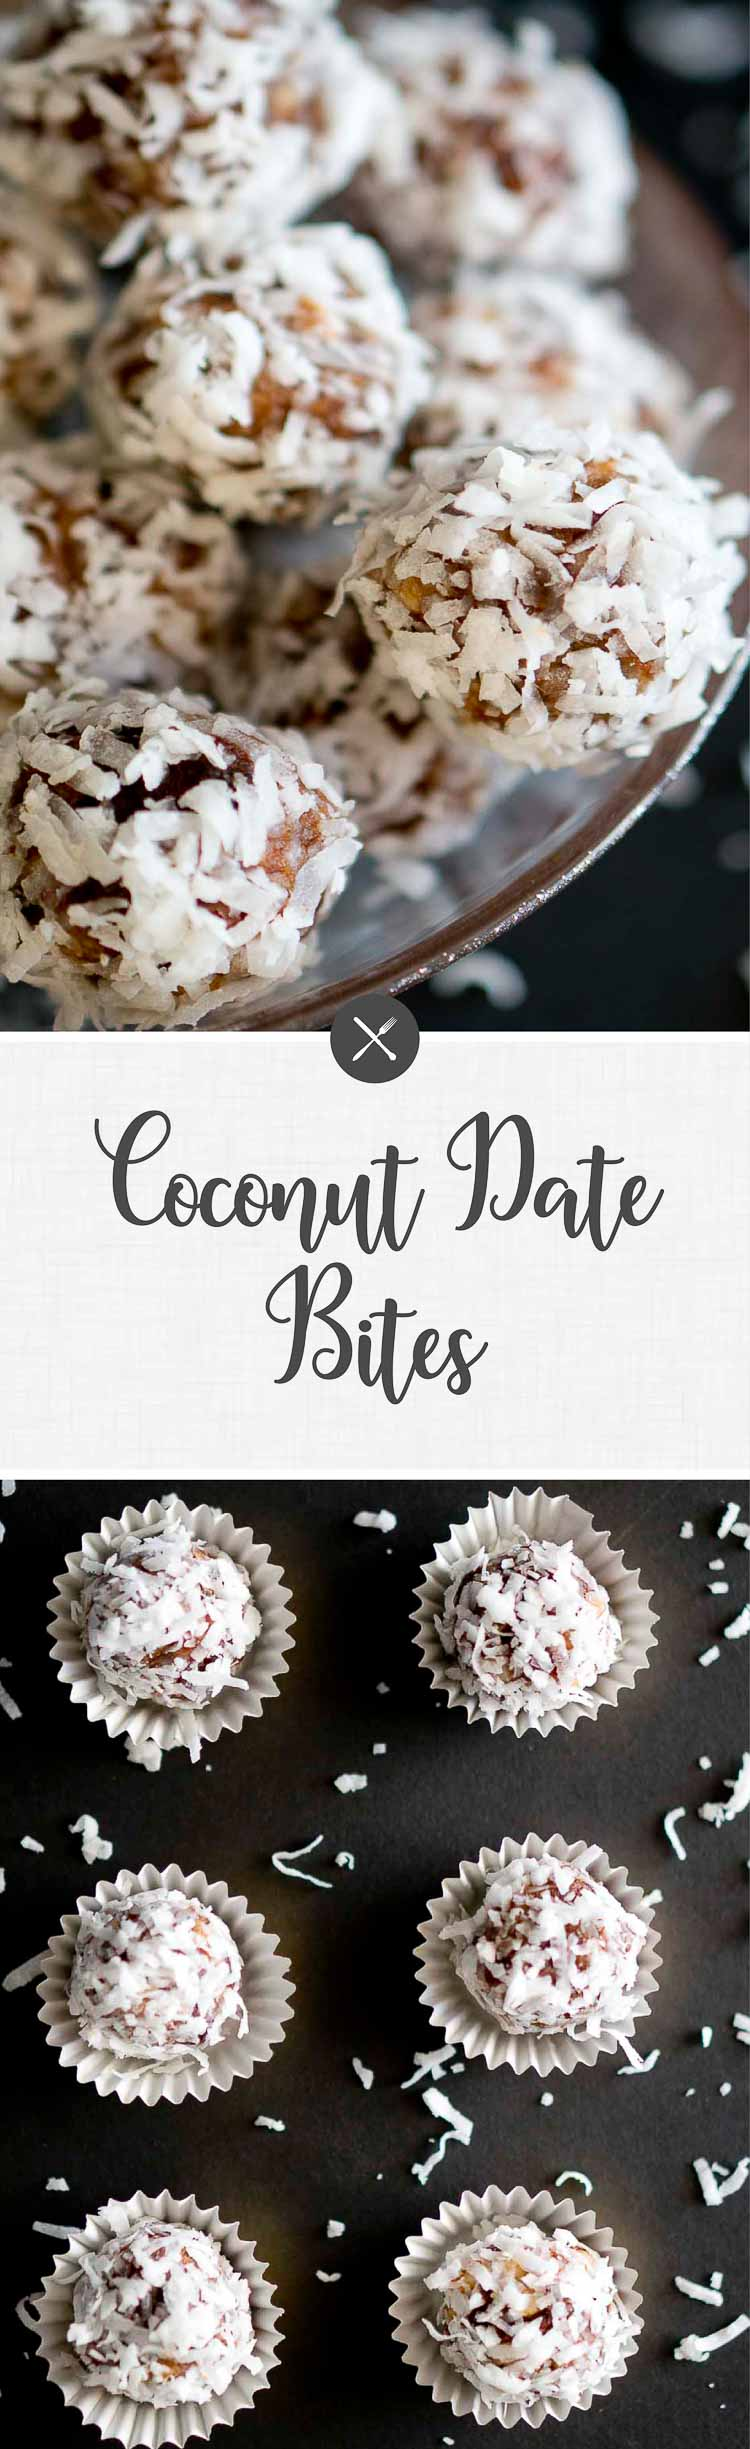 These naturally sweet no-bake coconut date bites are sweet little bites of absolute deliciousness, and they are gluten-free, paleo, dairy-free, and vegan!